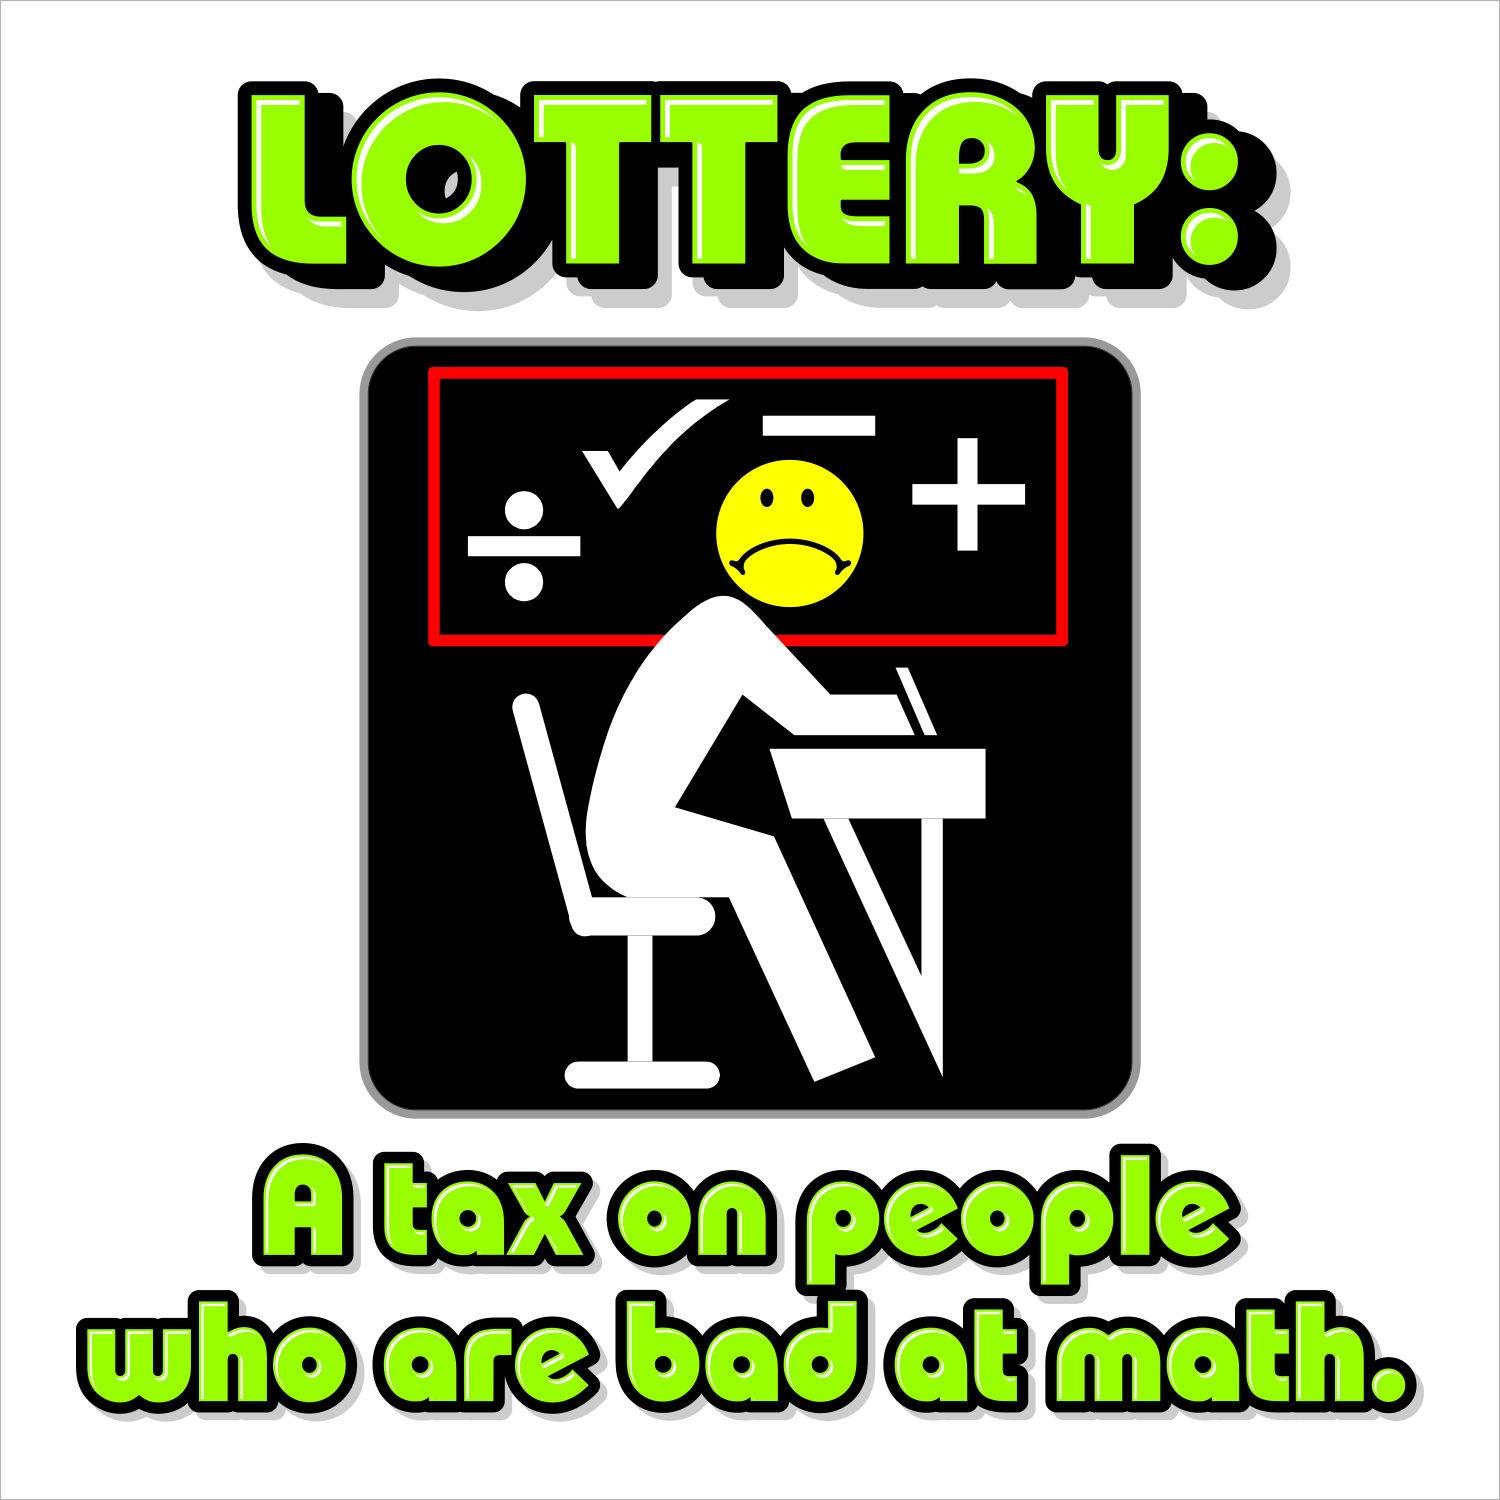 Cool Graphic LotteryBadAtMath.jpg